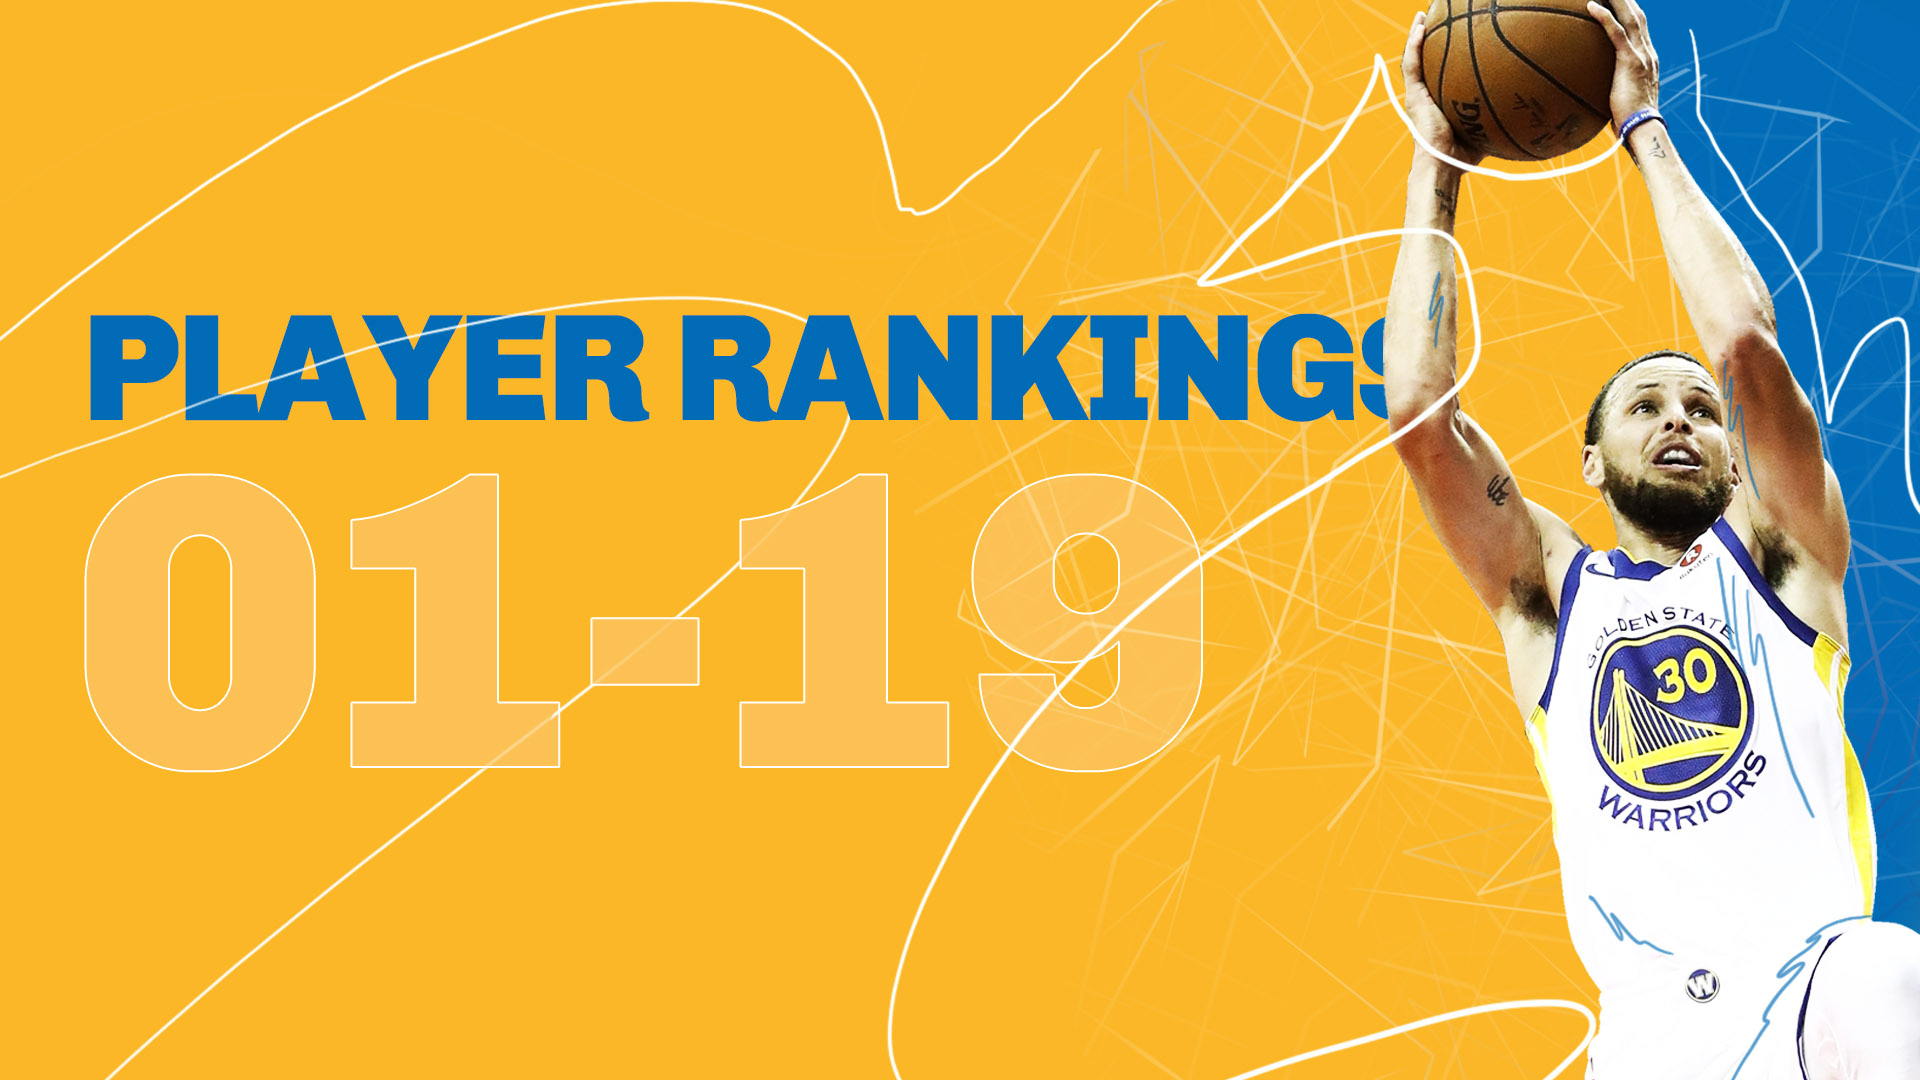 53c0a9877d7 Sporting News' NBA Top 100: Ranking basketball's best players (1-19) |  Sporting News